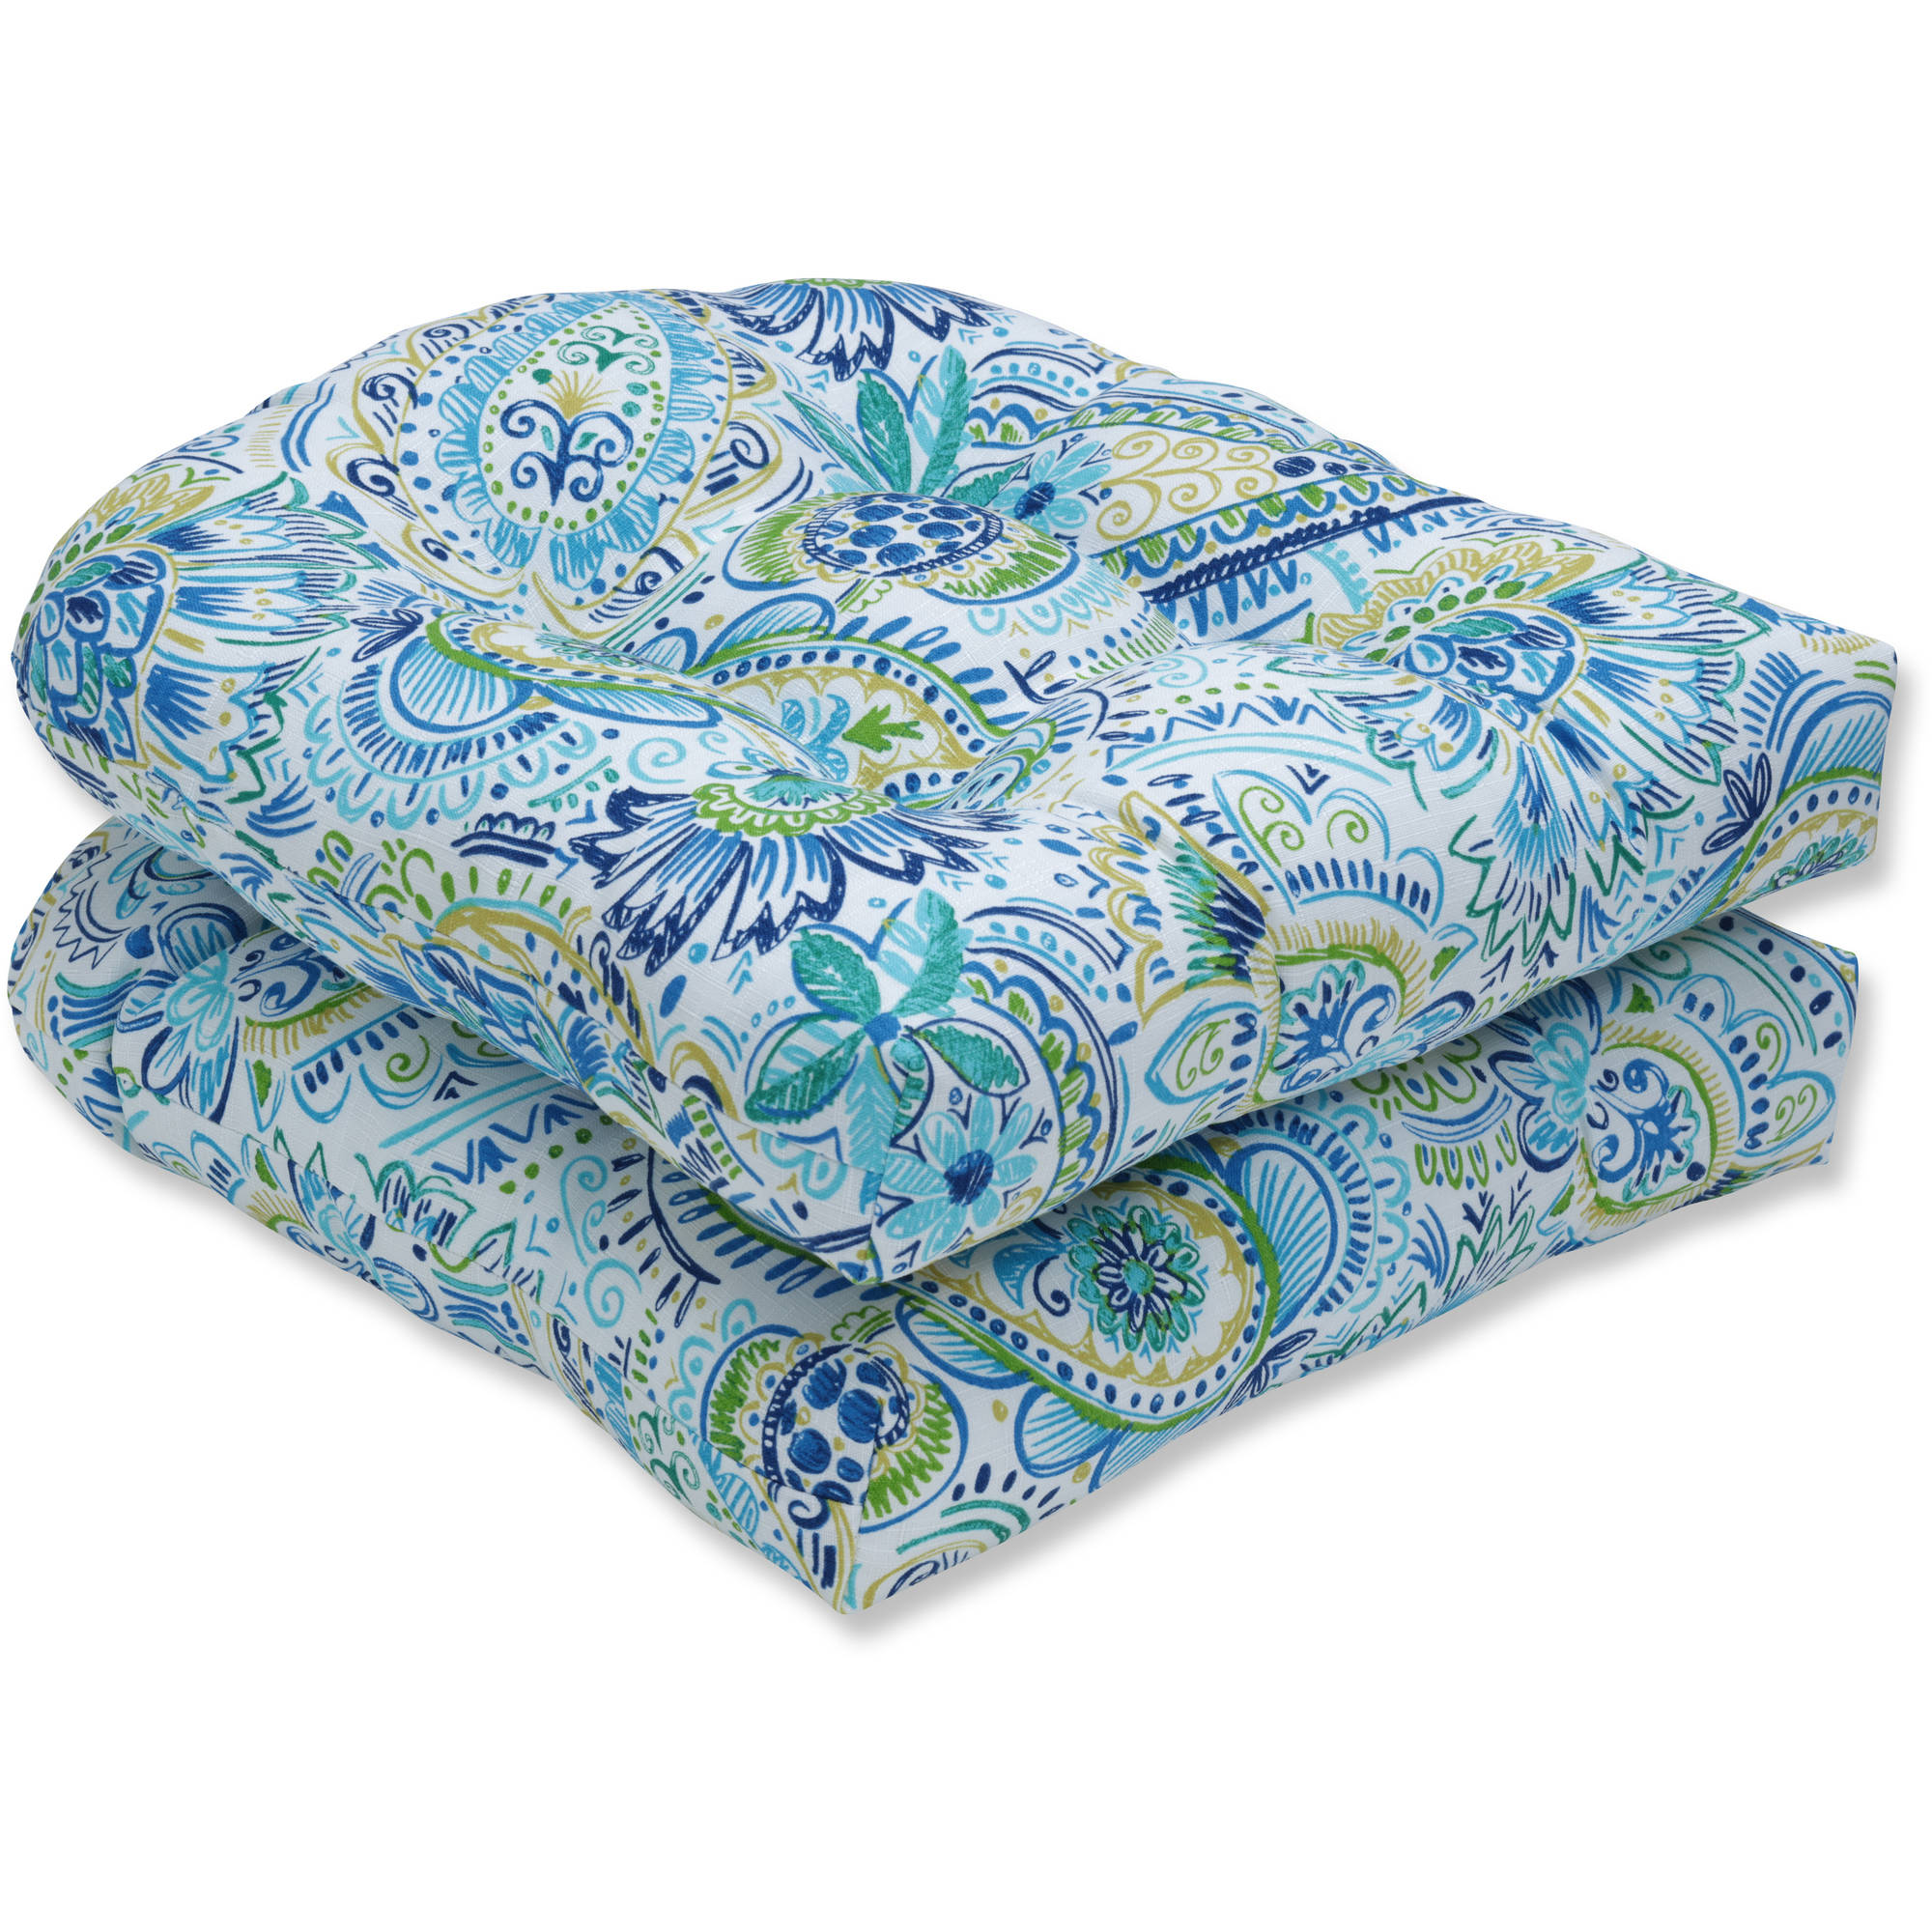 Pillow Perfect Outdoor/Indoor Gilford Baltic Wicker Seat Cushion, Set of 2